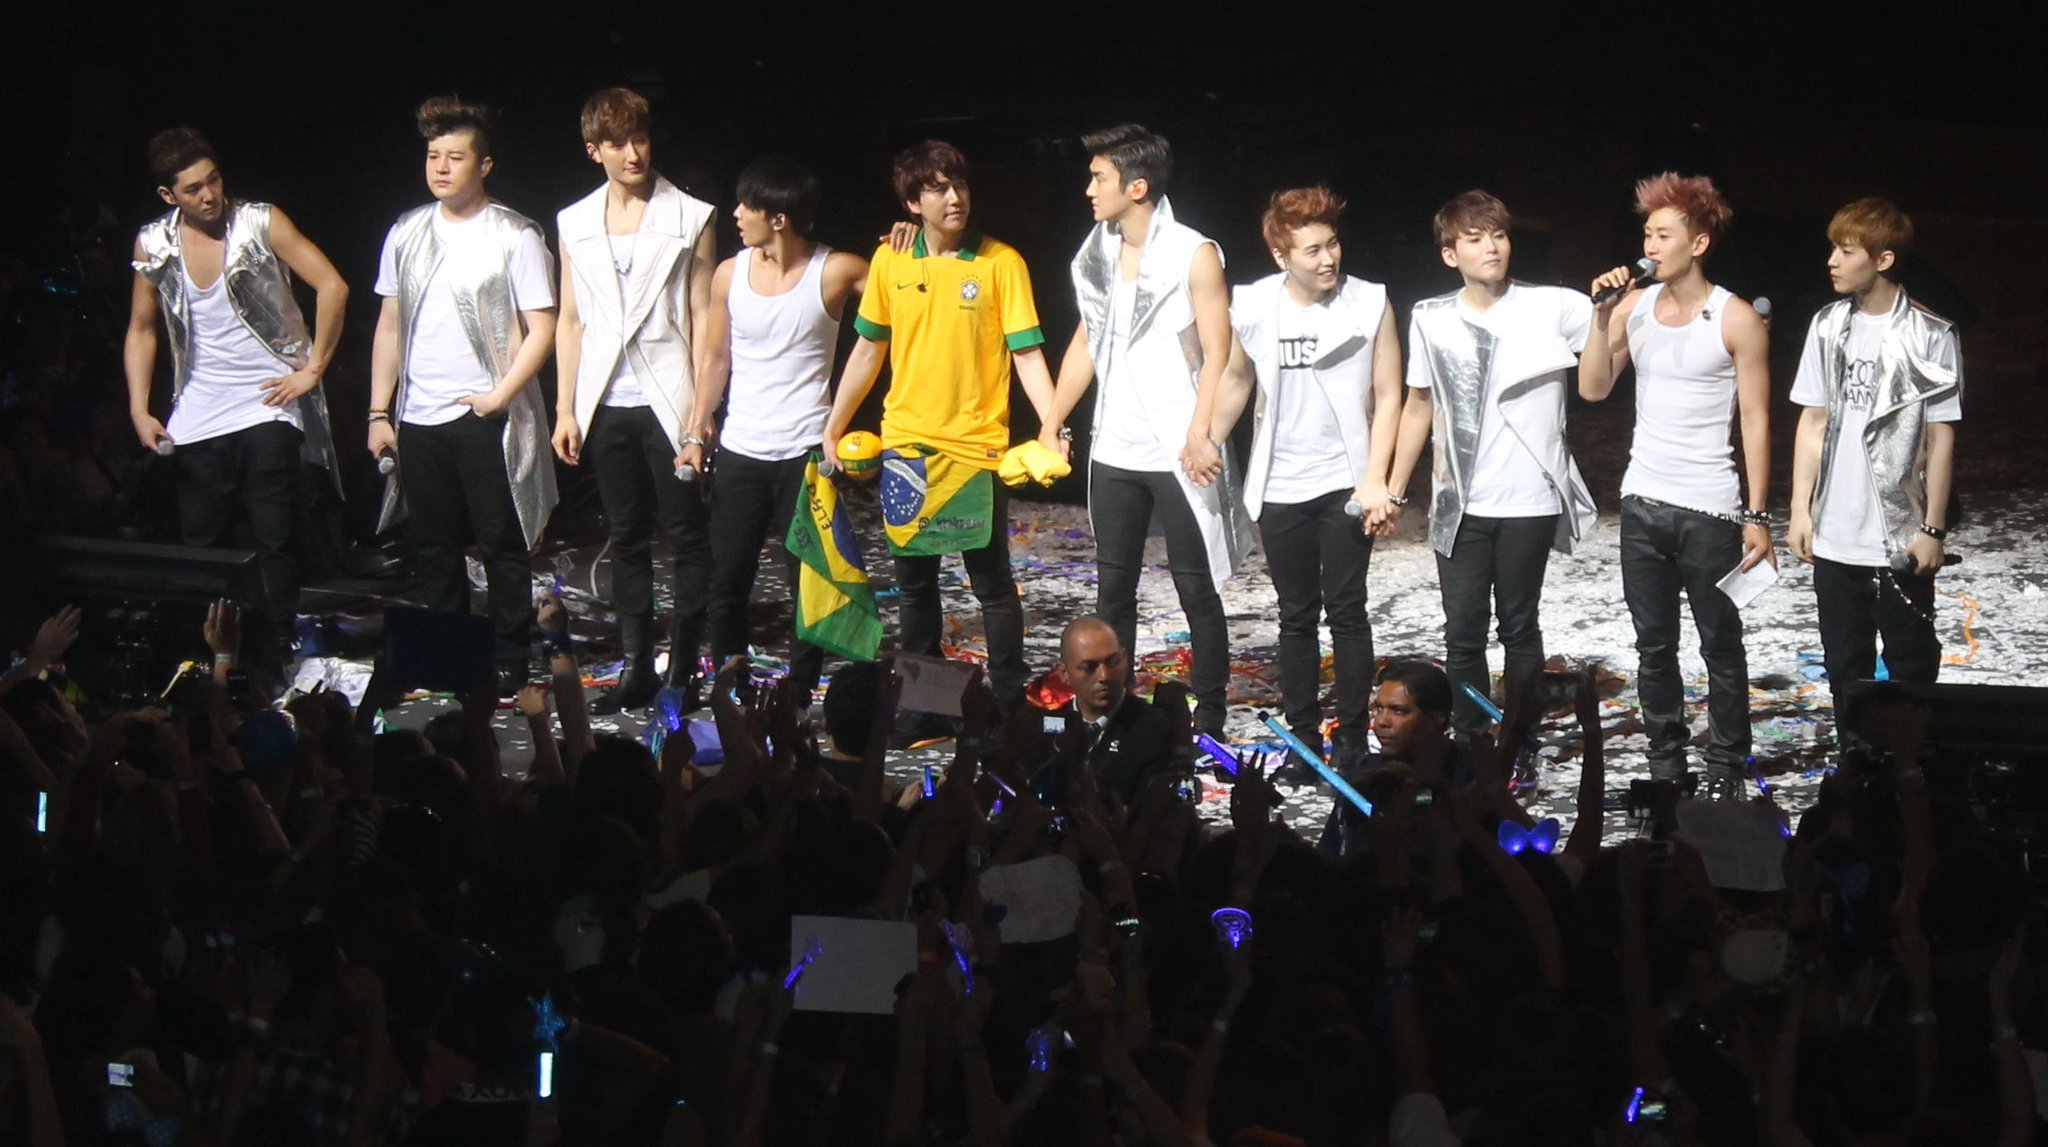 Super Junior holds the record for the largest Kpop concert in Brazil https://t.co/pZhiyeRLKW